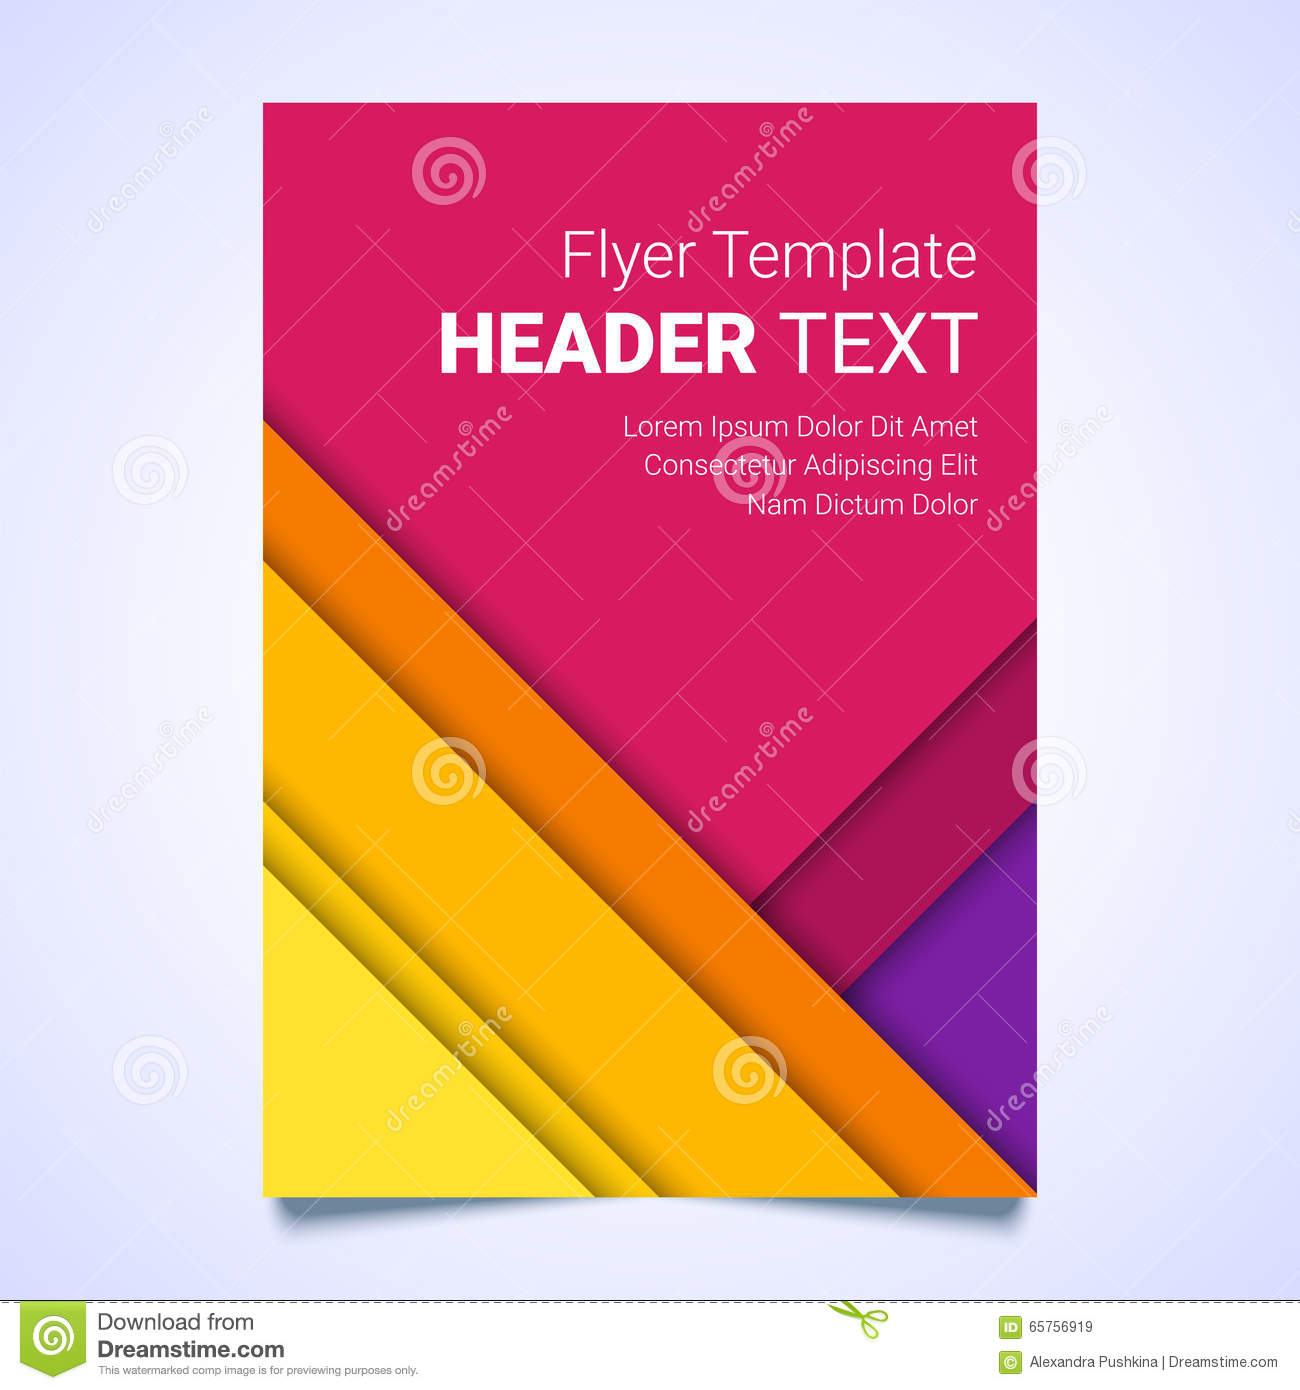 Poster design business - Flyer Template In A Material Design Style Modern Poster Business Template Brochure Colorful Template